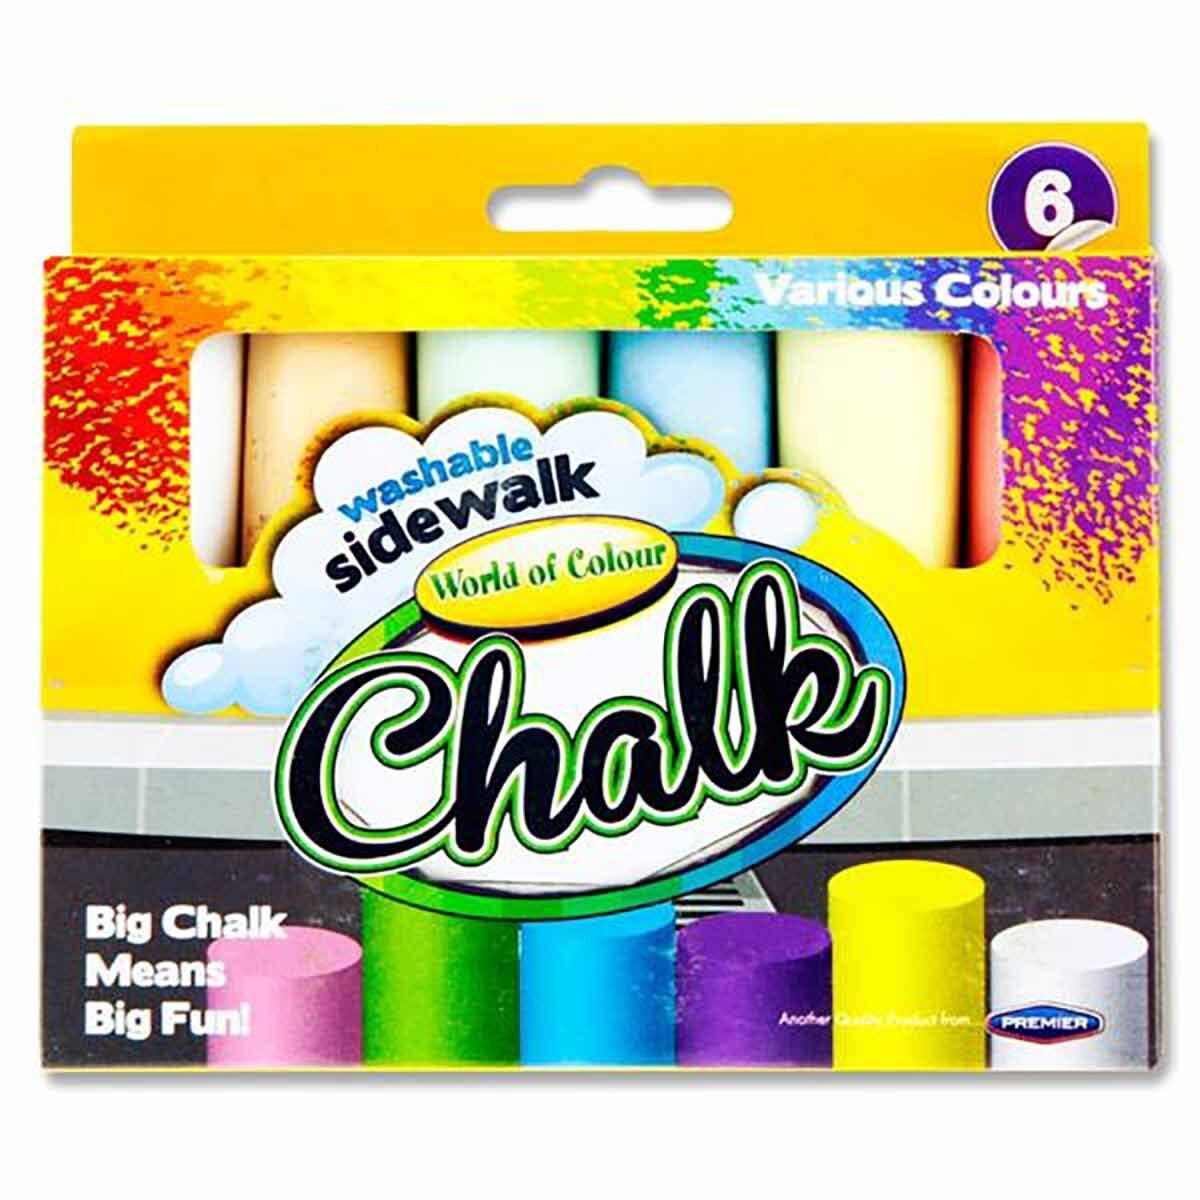 World of Colour Jumbo Sidewalk Chalks Pack of 6 Assorted